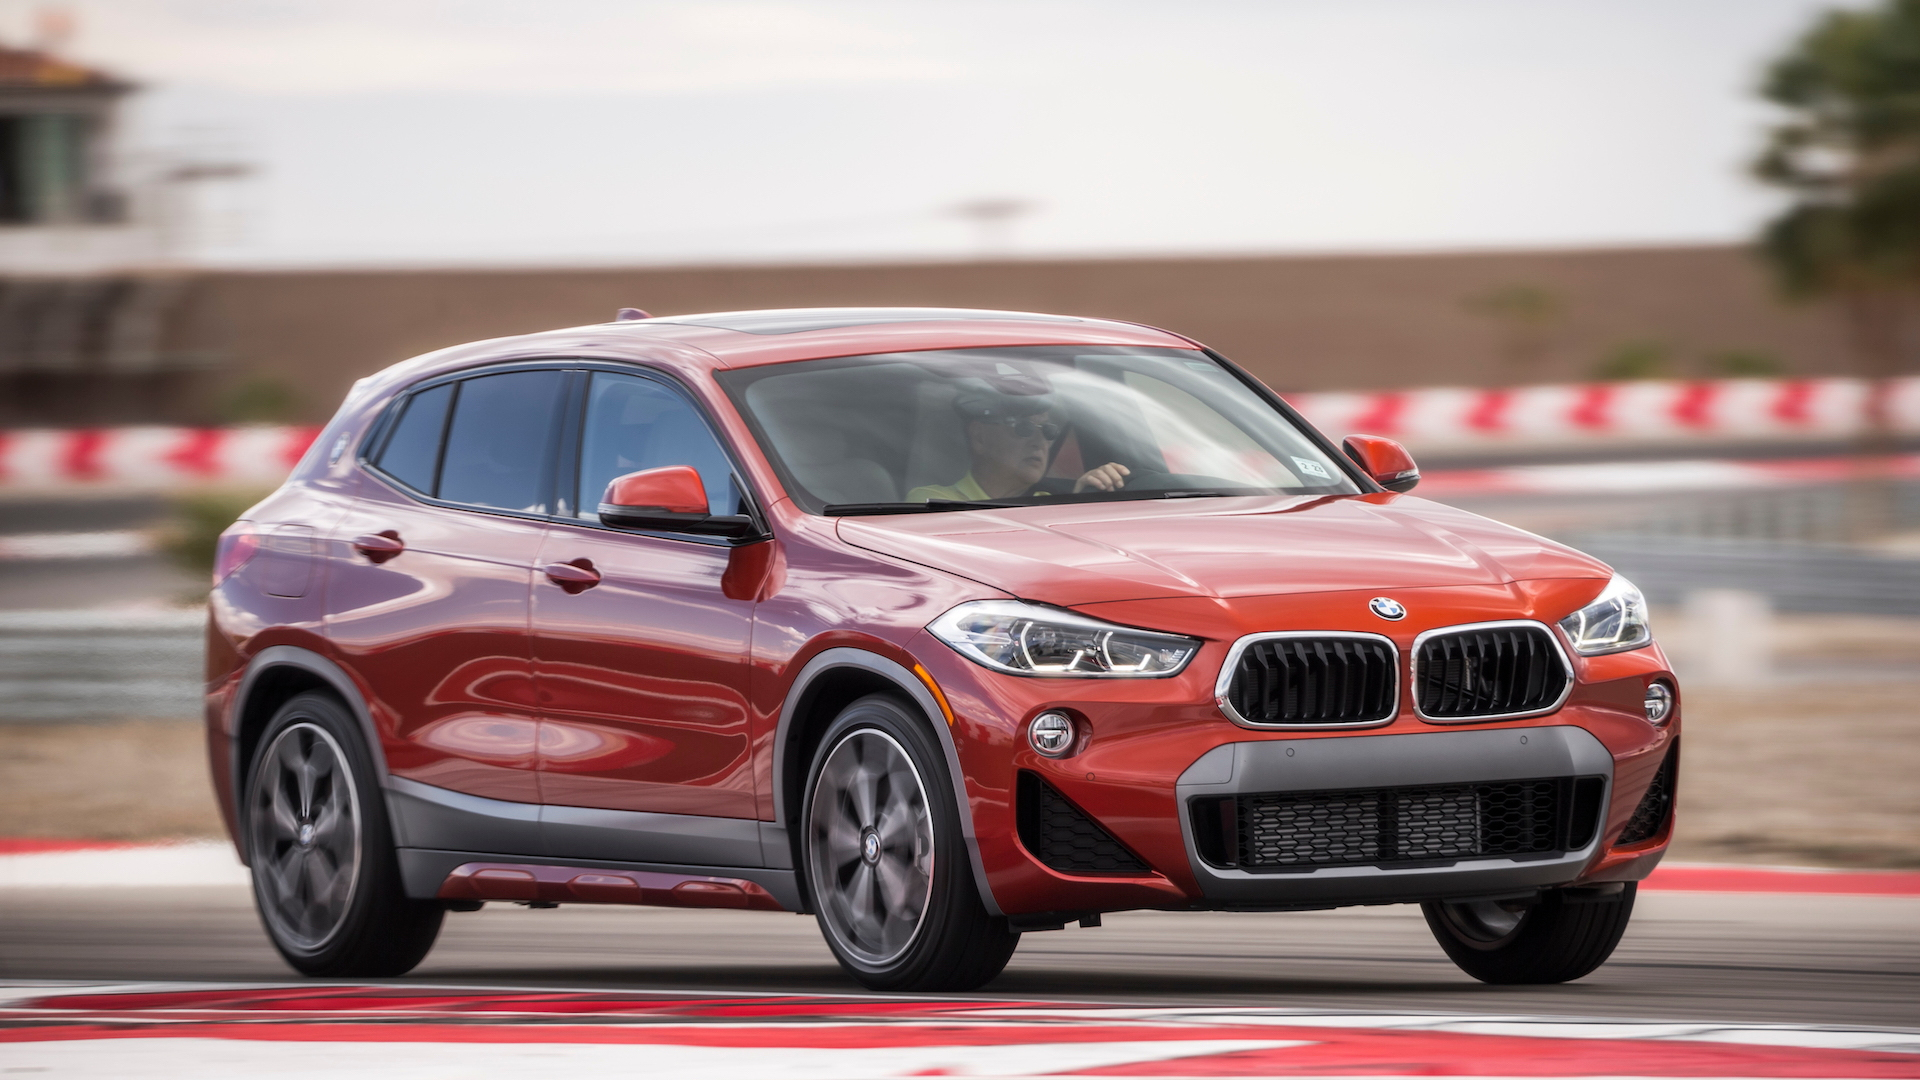 2018 bmw x2 first drive review at least it s a bmw. Black Bedroom Furniture Sets. Home Design Ideas